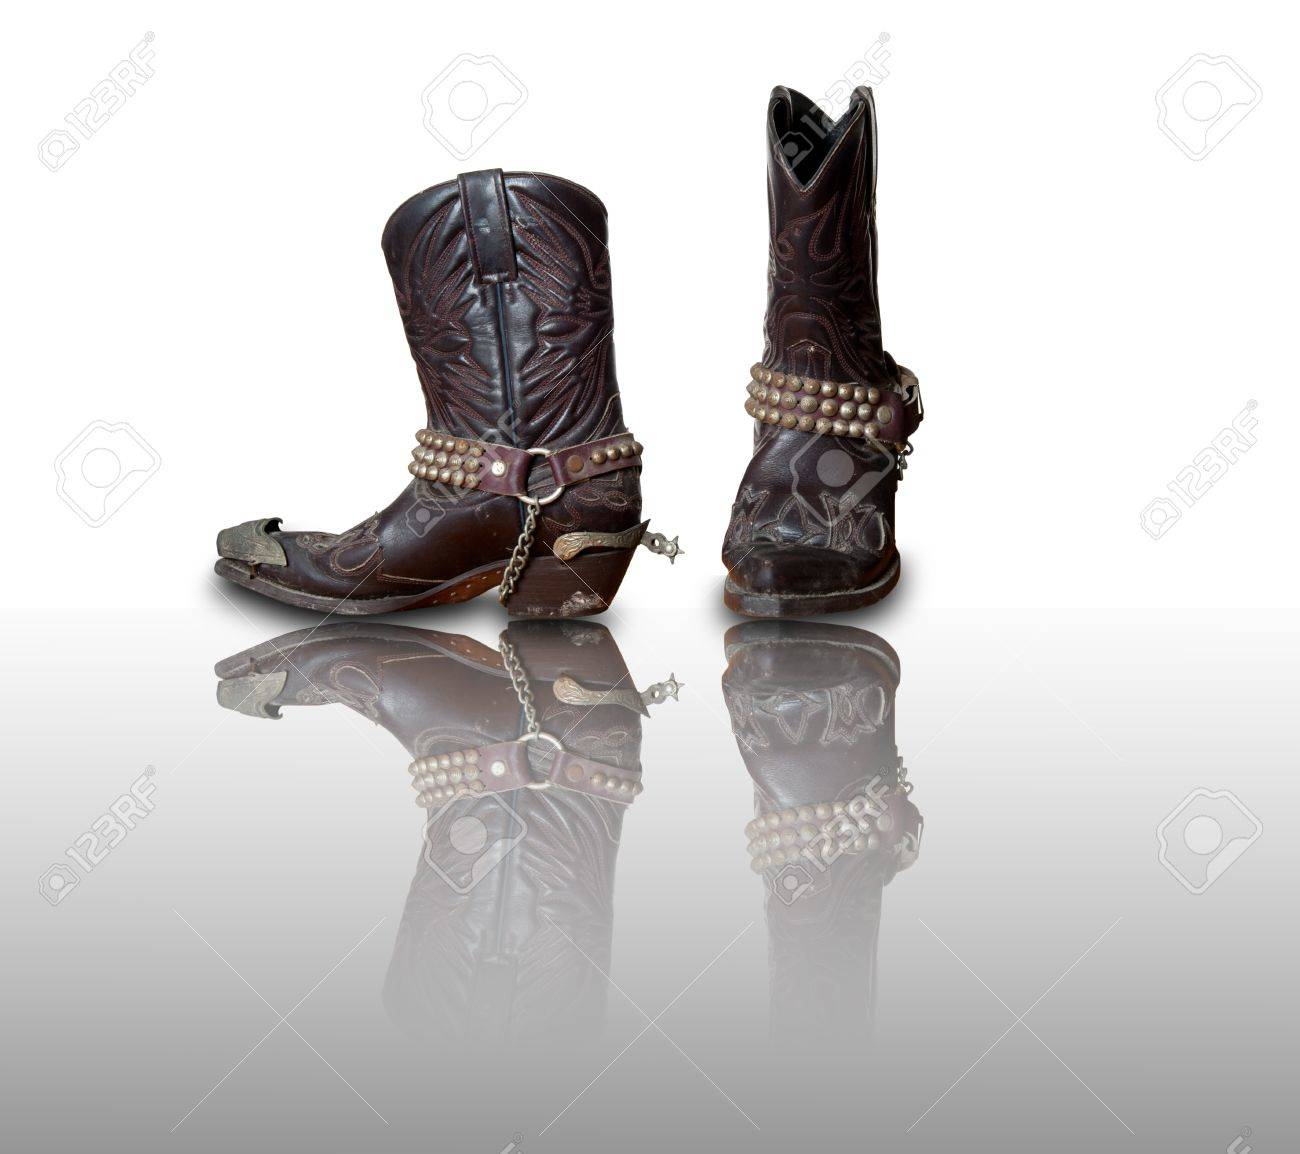 Retro Cowboy Boots With Refleciton Stock Photo, Picture And ...